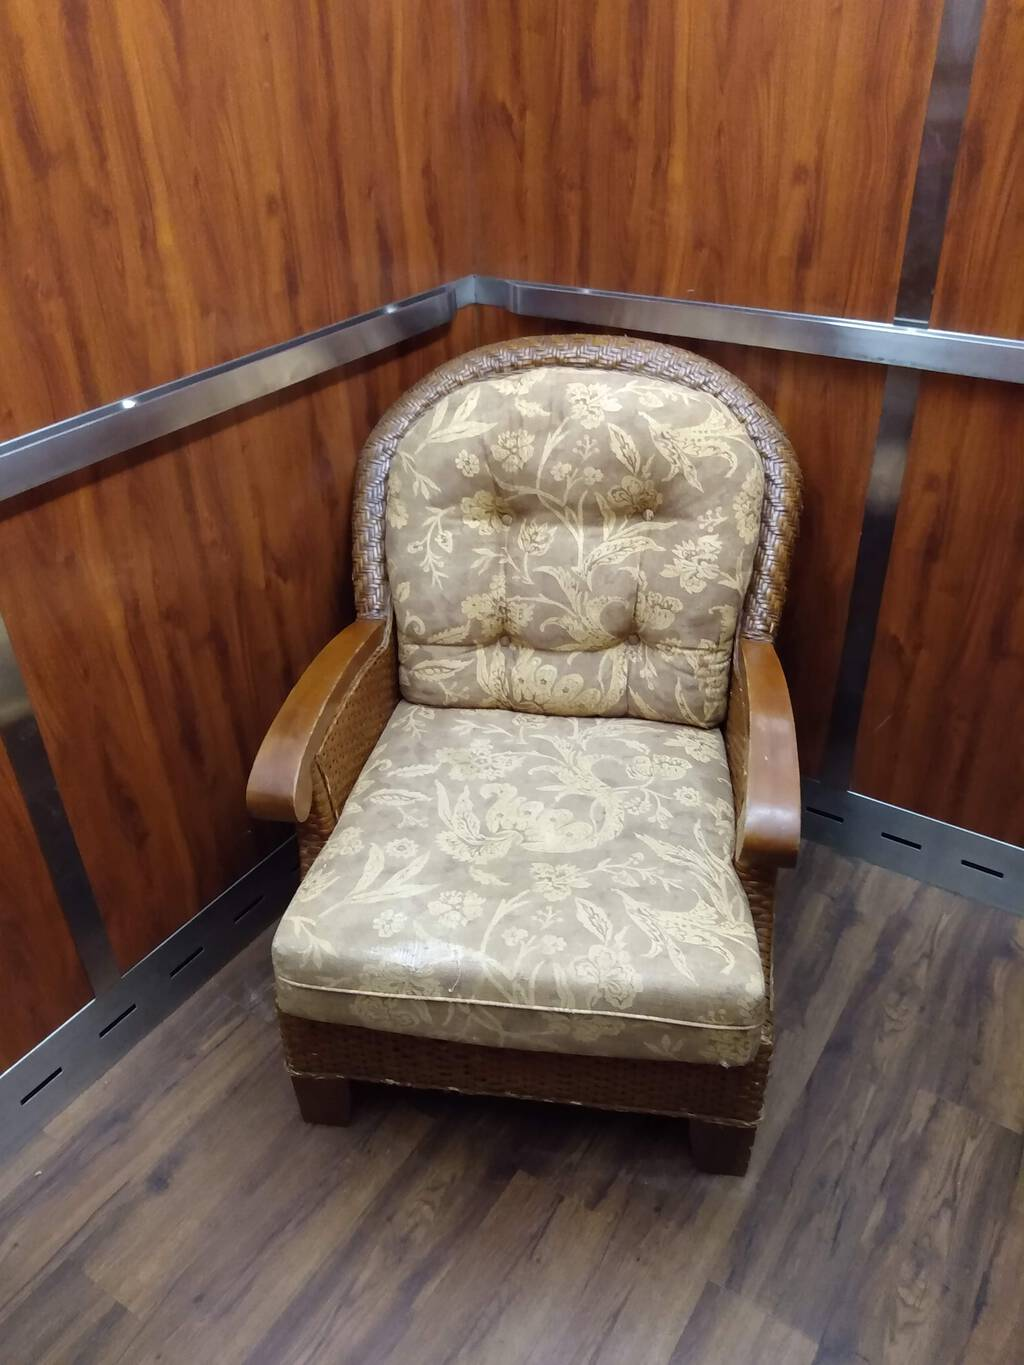 Armchair inside an elevator